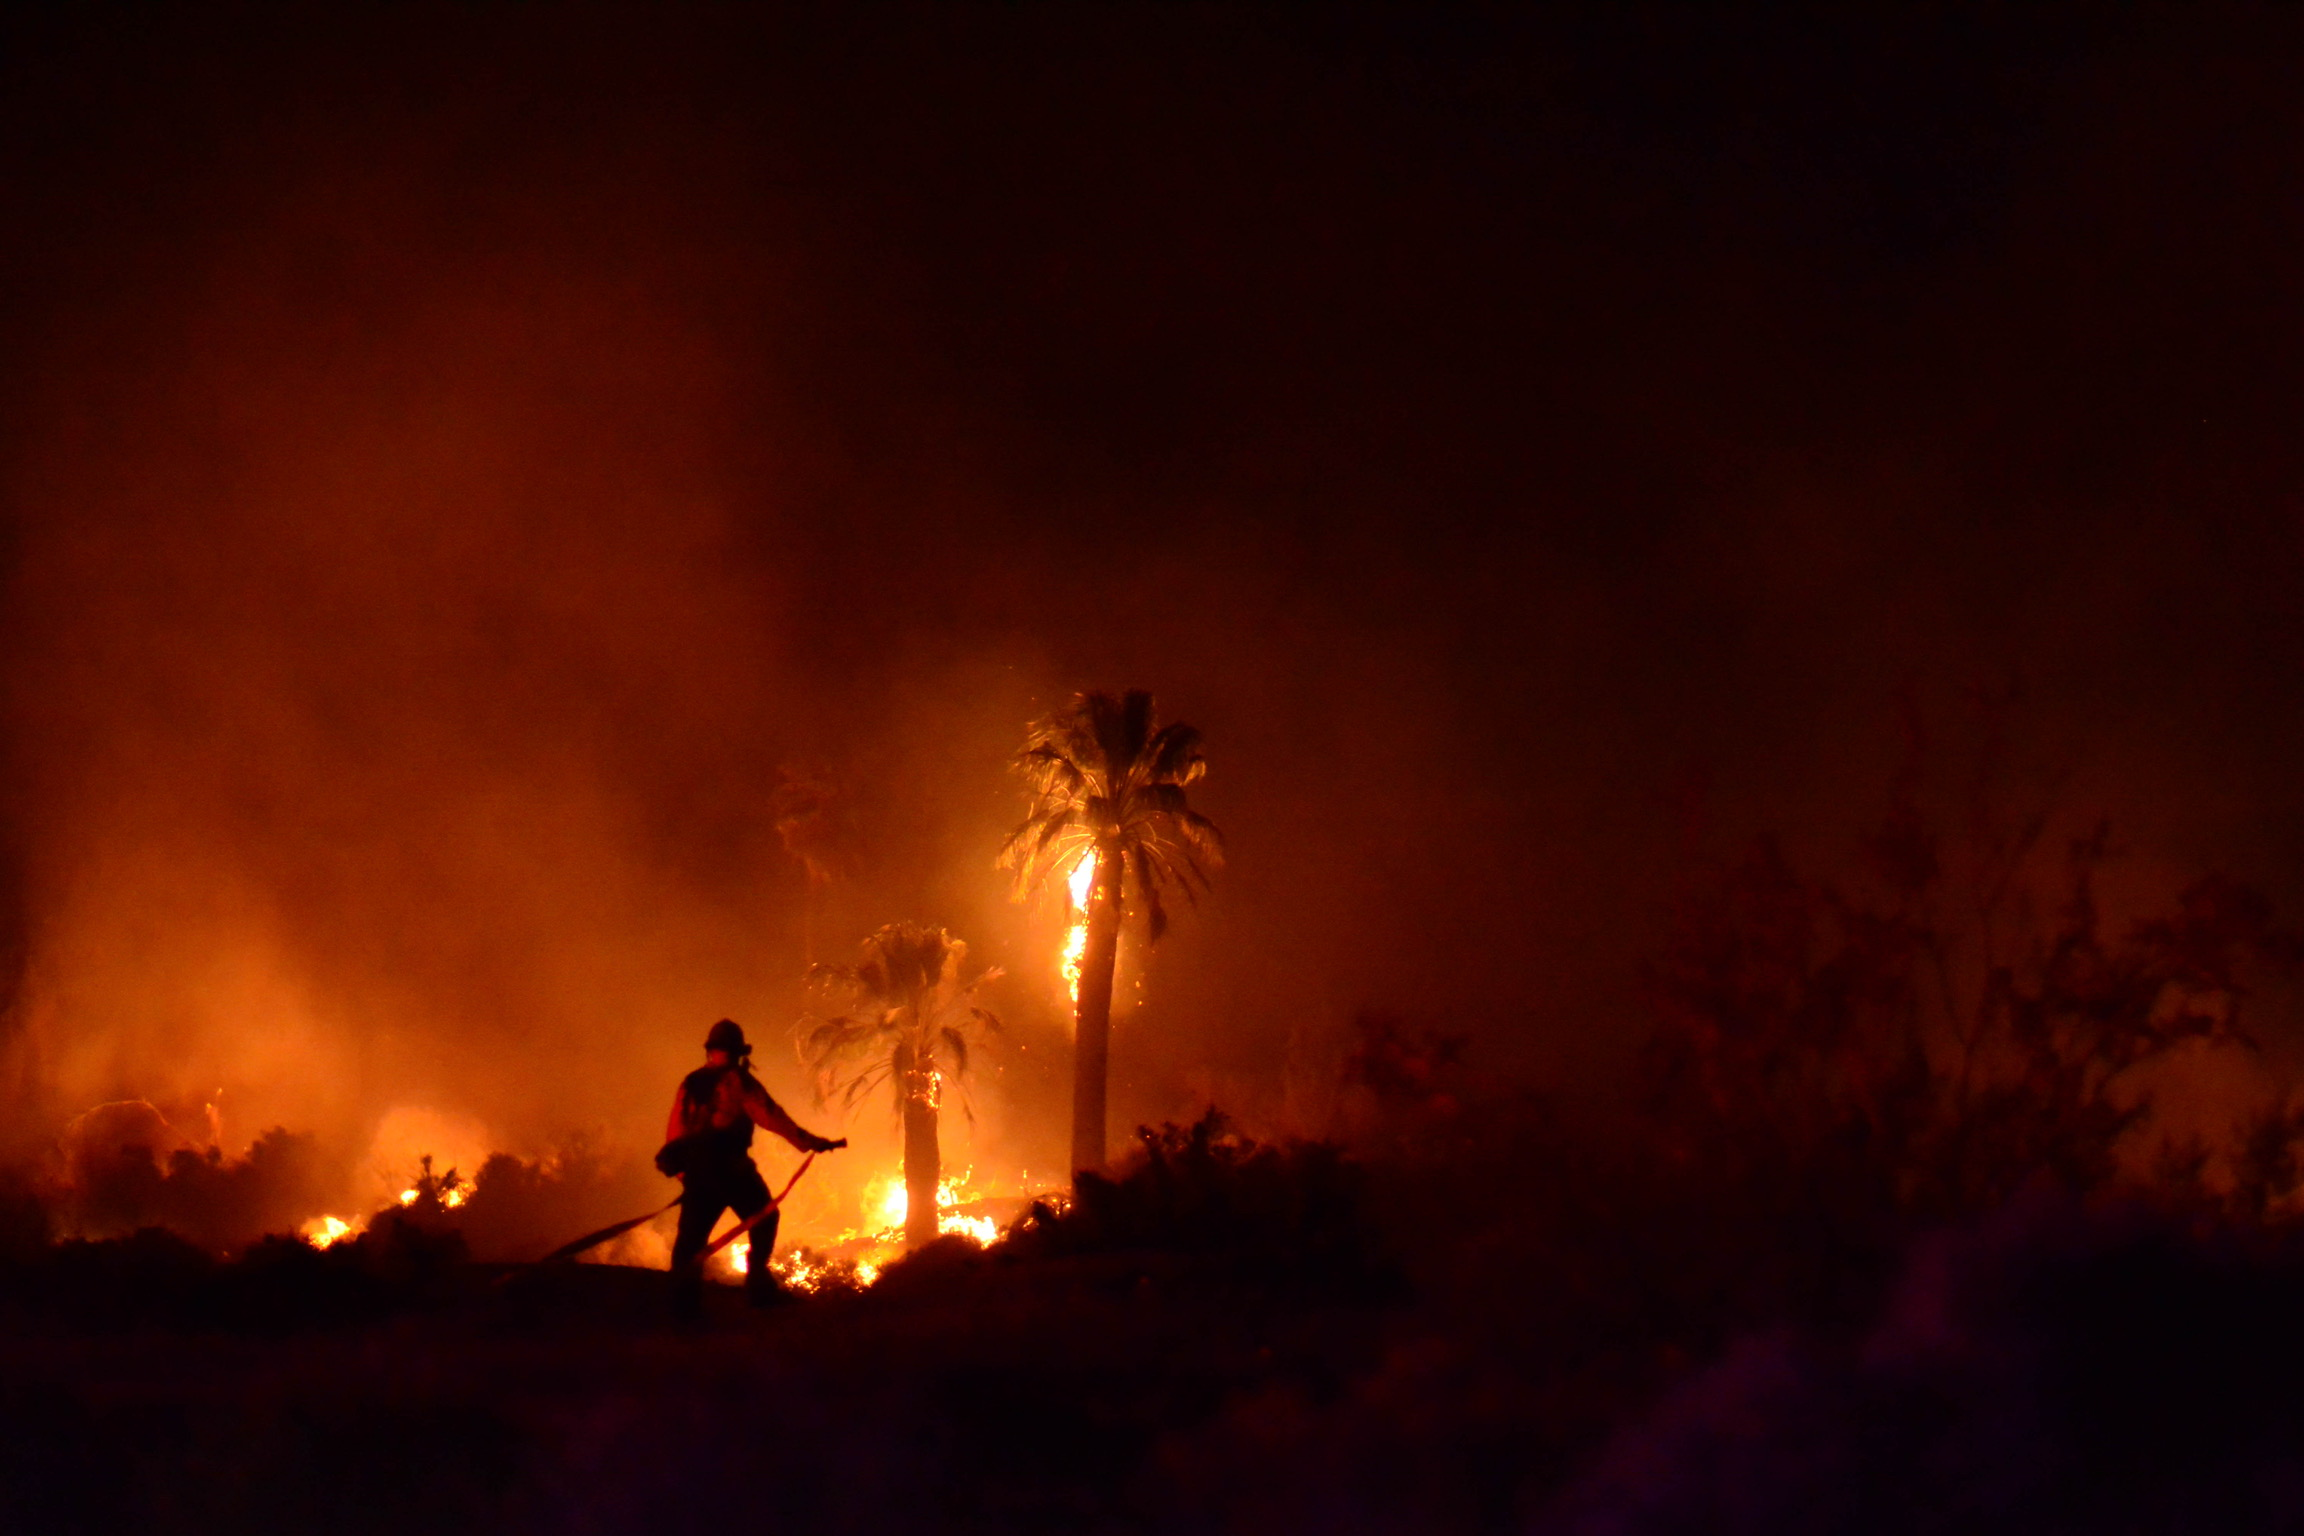 Night photo of palm trees ablaze from a fire in the Oasis of Mara. Photo credit: Steve Raines